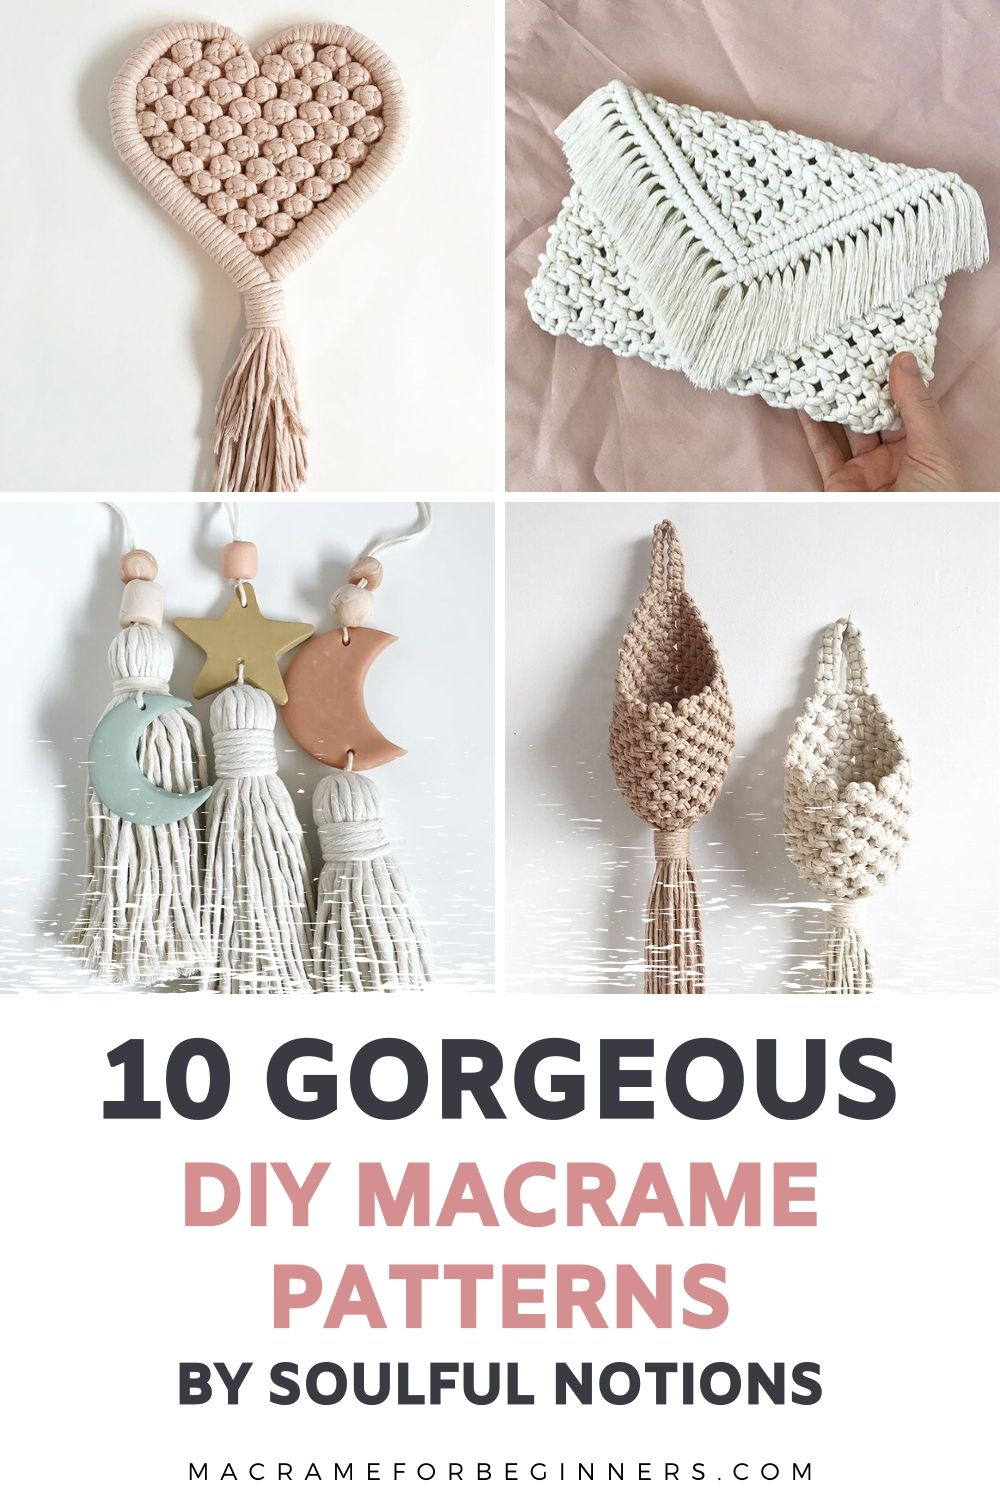 Top 10 Most Gorgeous DIY Macrame Tutorials by Soulful Notions